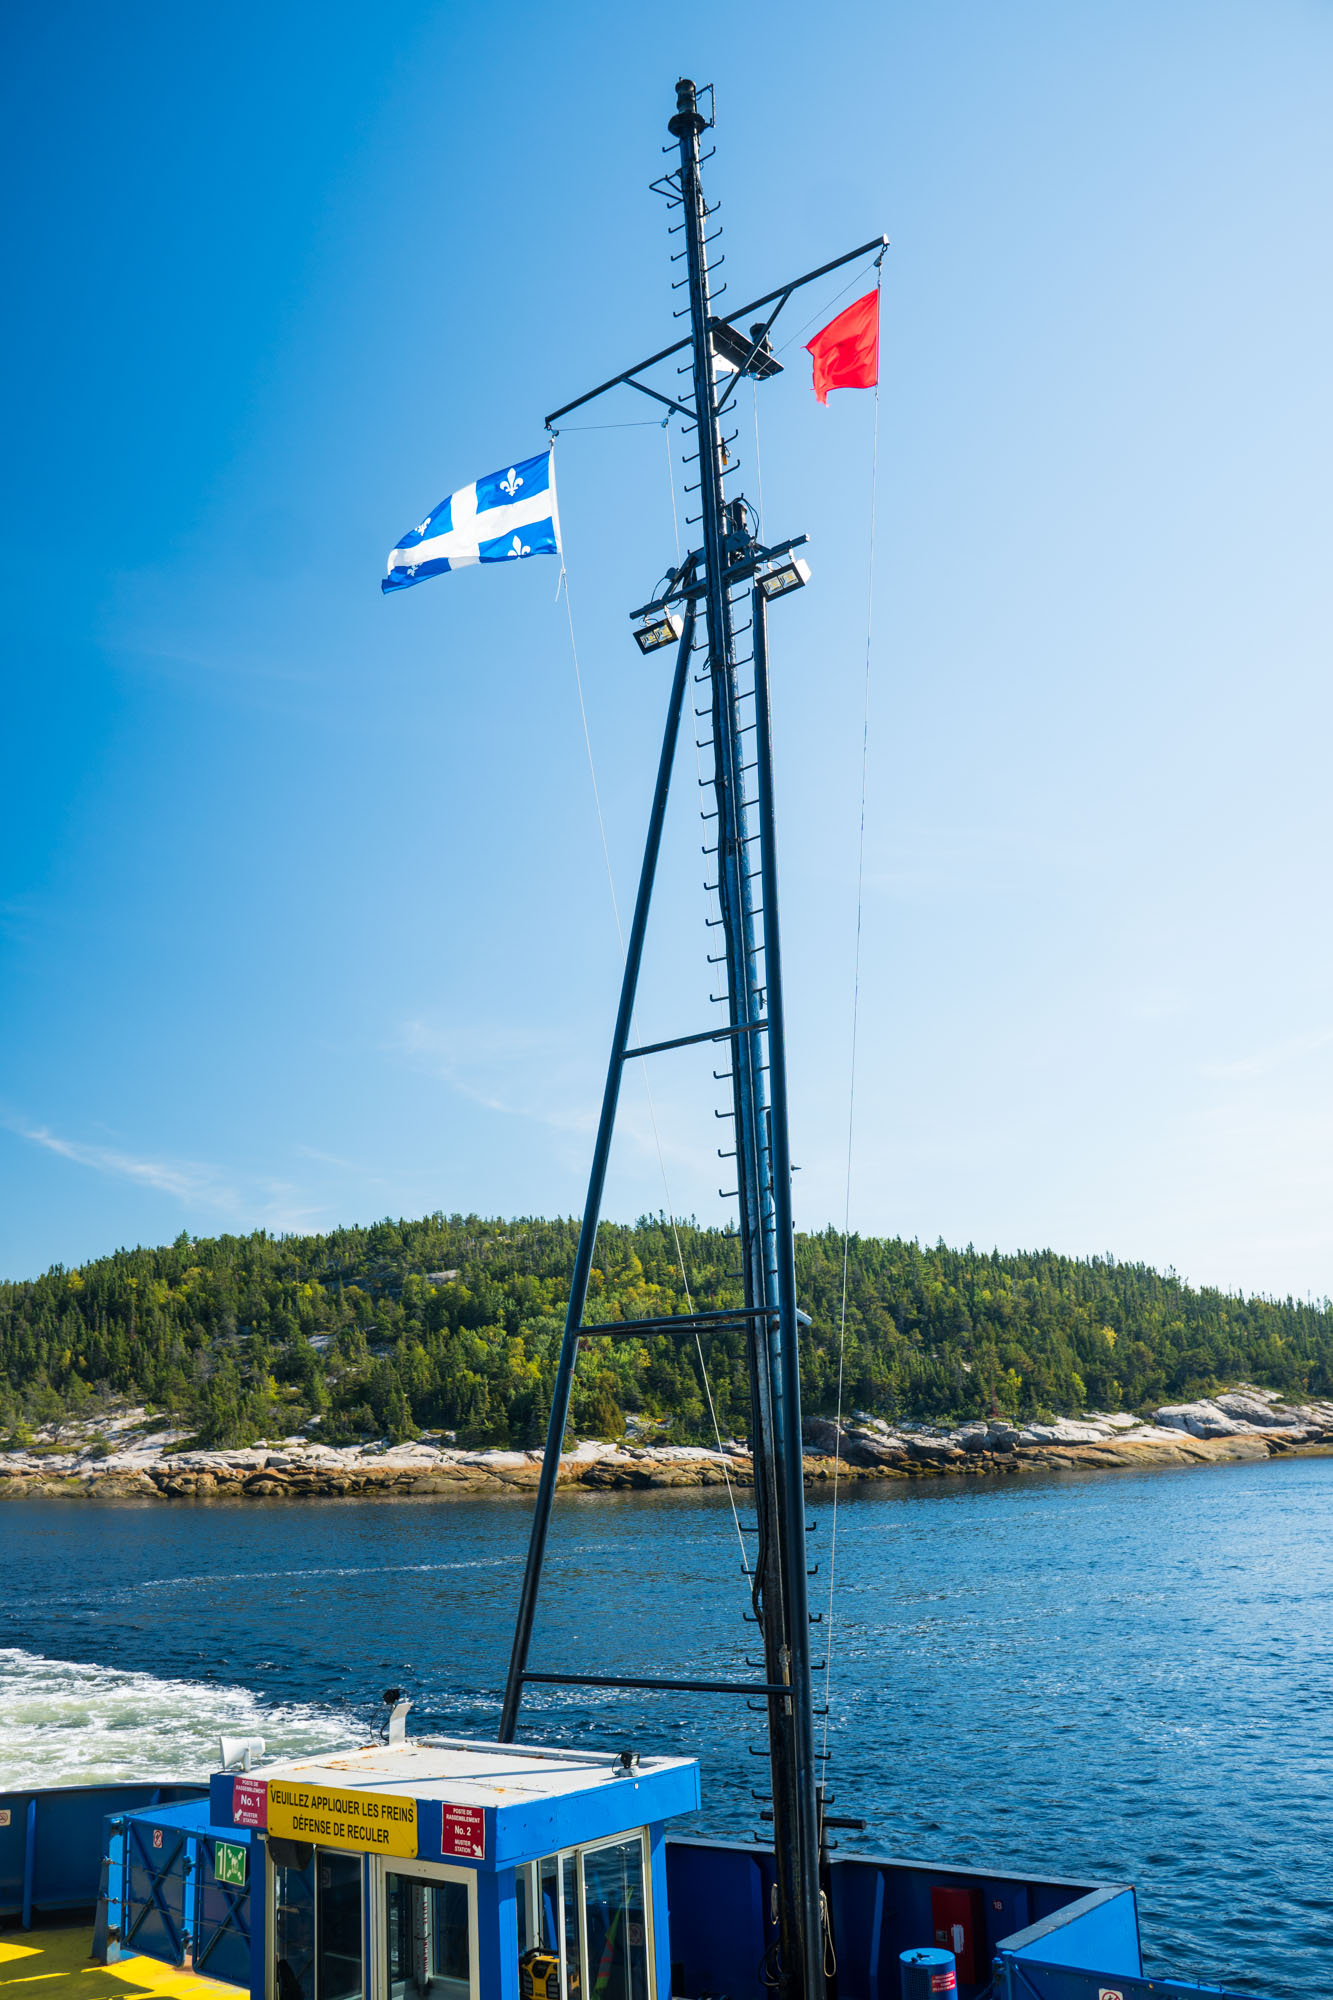 Ferry crossing of the Saguenay river in Tadoussac, Quebec